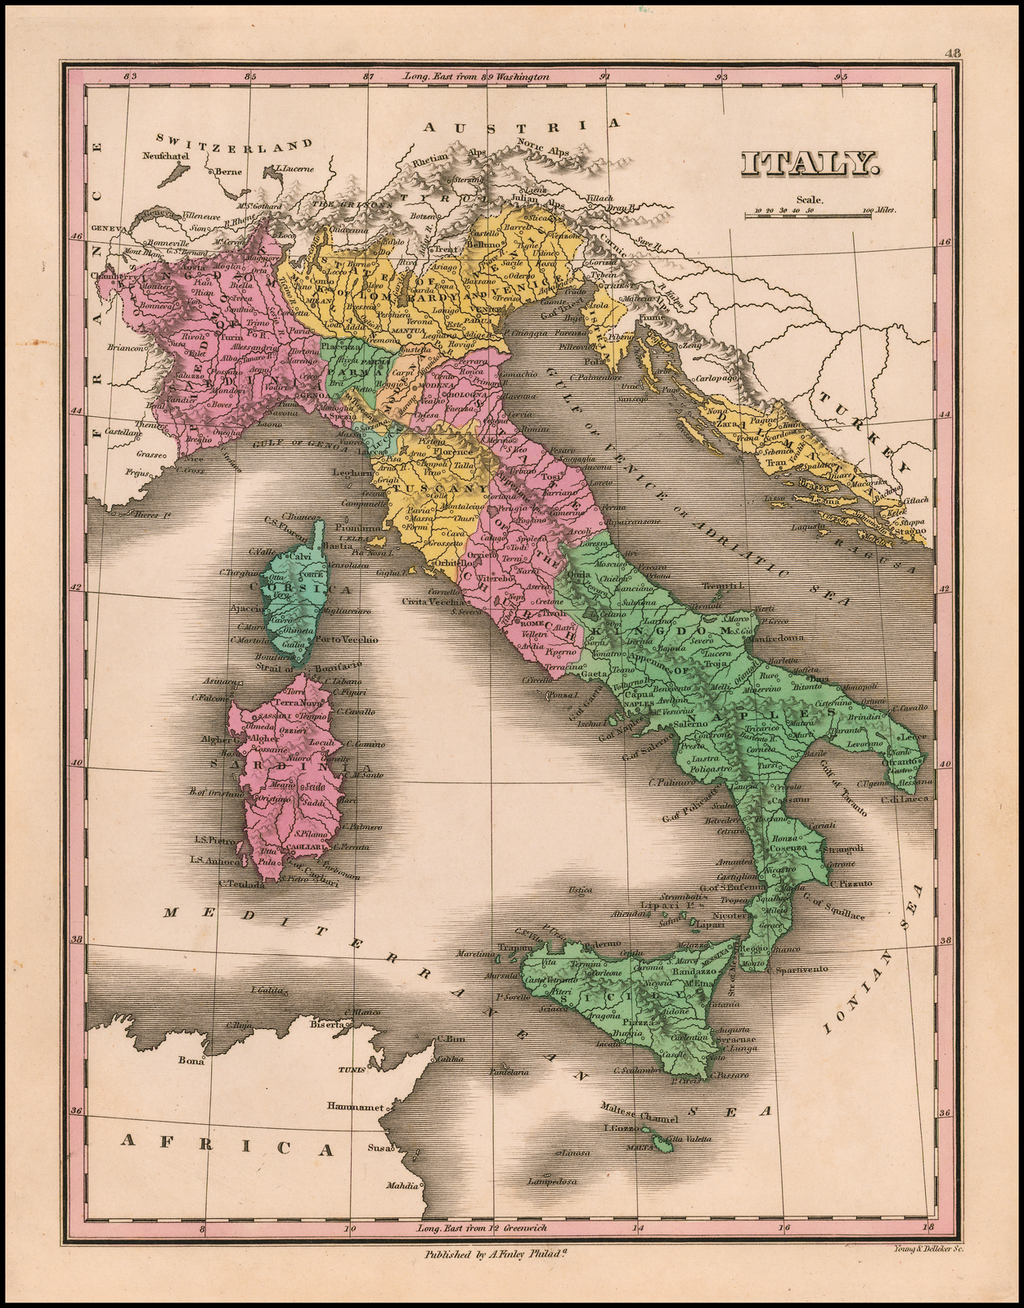 Italy [shows Corsica, Sardinia, Sicily and Malta] - Barry ... on show map of mongolia, show map of canadian provinces, show map of cuba, show map of lebanon, show map of windward islands, show map of oceans, capri italy, italian language map italy, show map of central asia, show map of middle east countries, show map of syracuse, show map of south-east asia, show a map of us, show map of zambia, show a map of time zones, show map of south korea, show a map of central america, show map of macedonia, show map of switzerland, show map of kuwait,